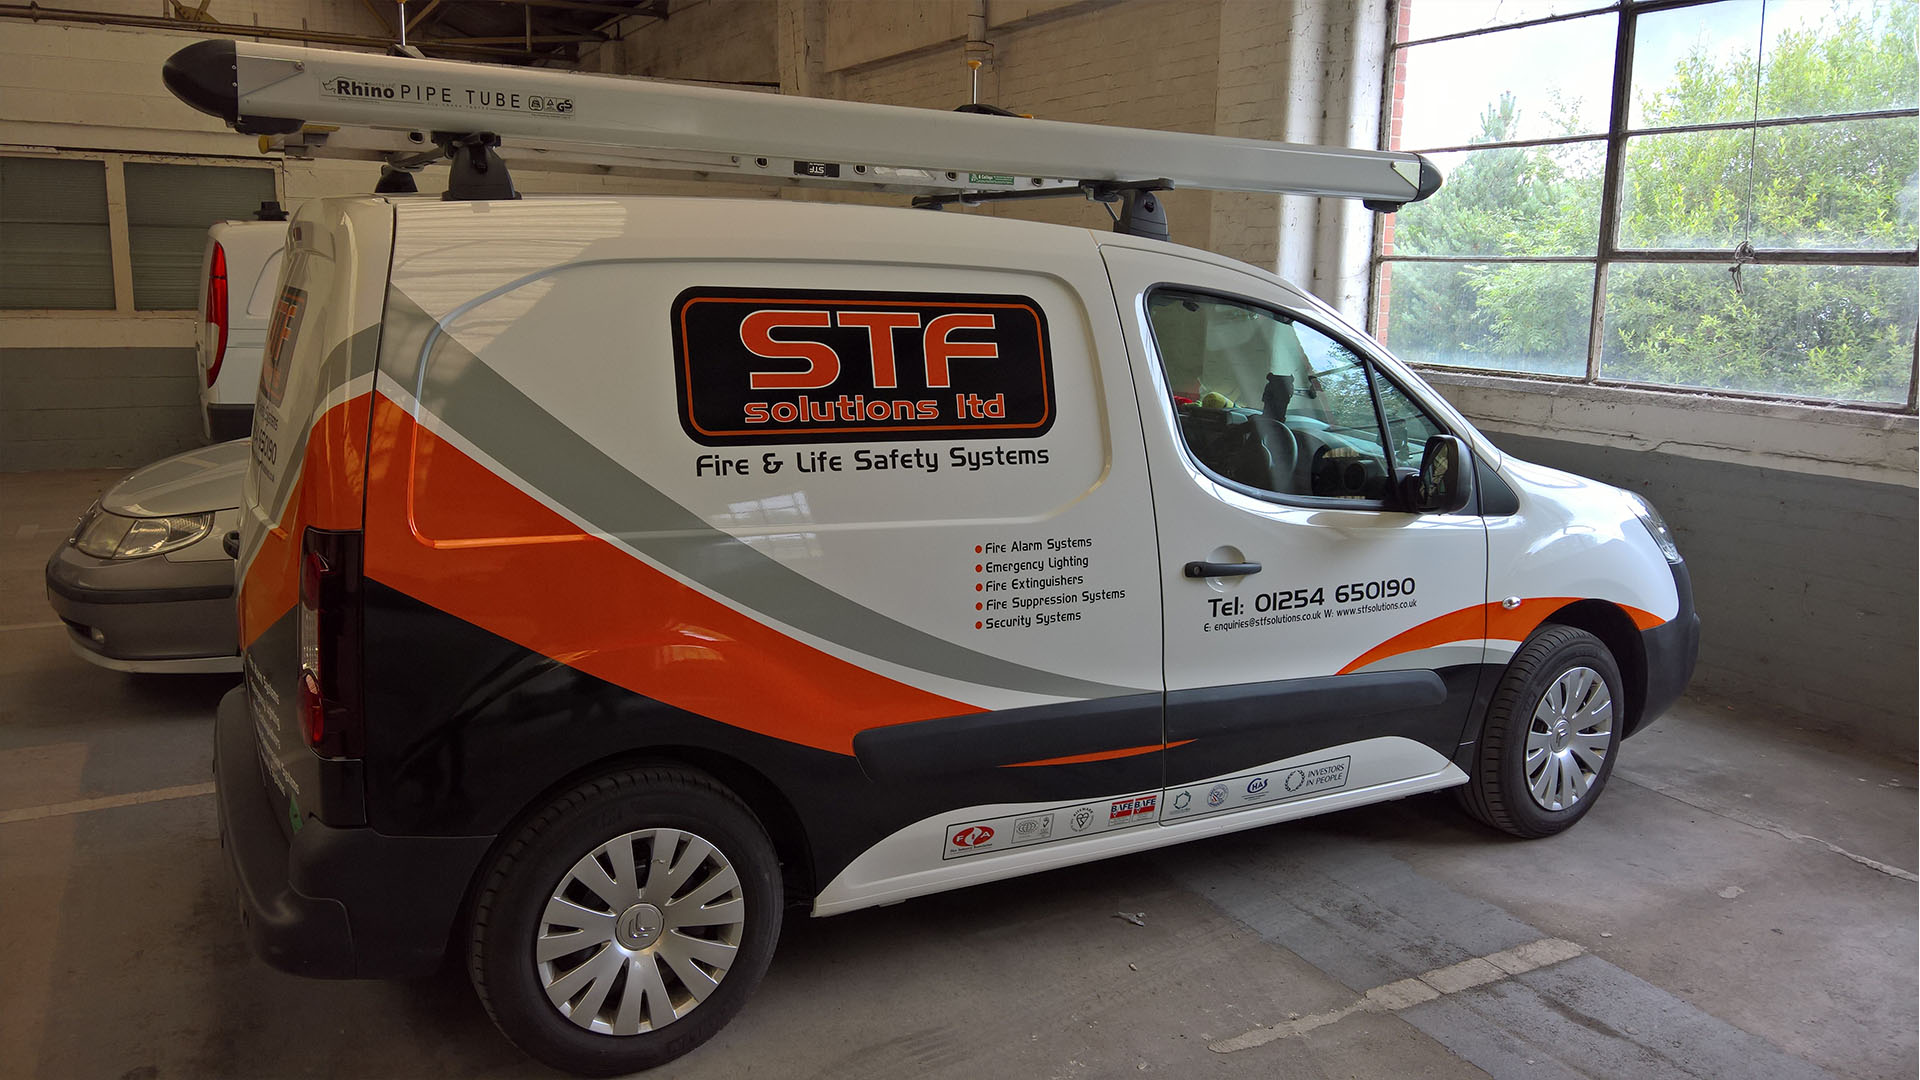 STF Solutions Ltd Van